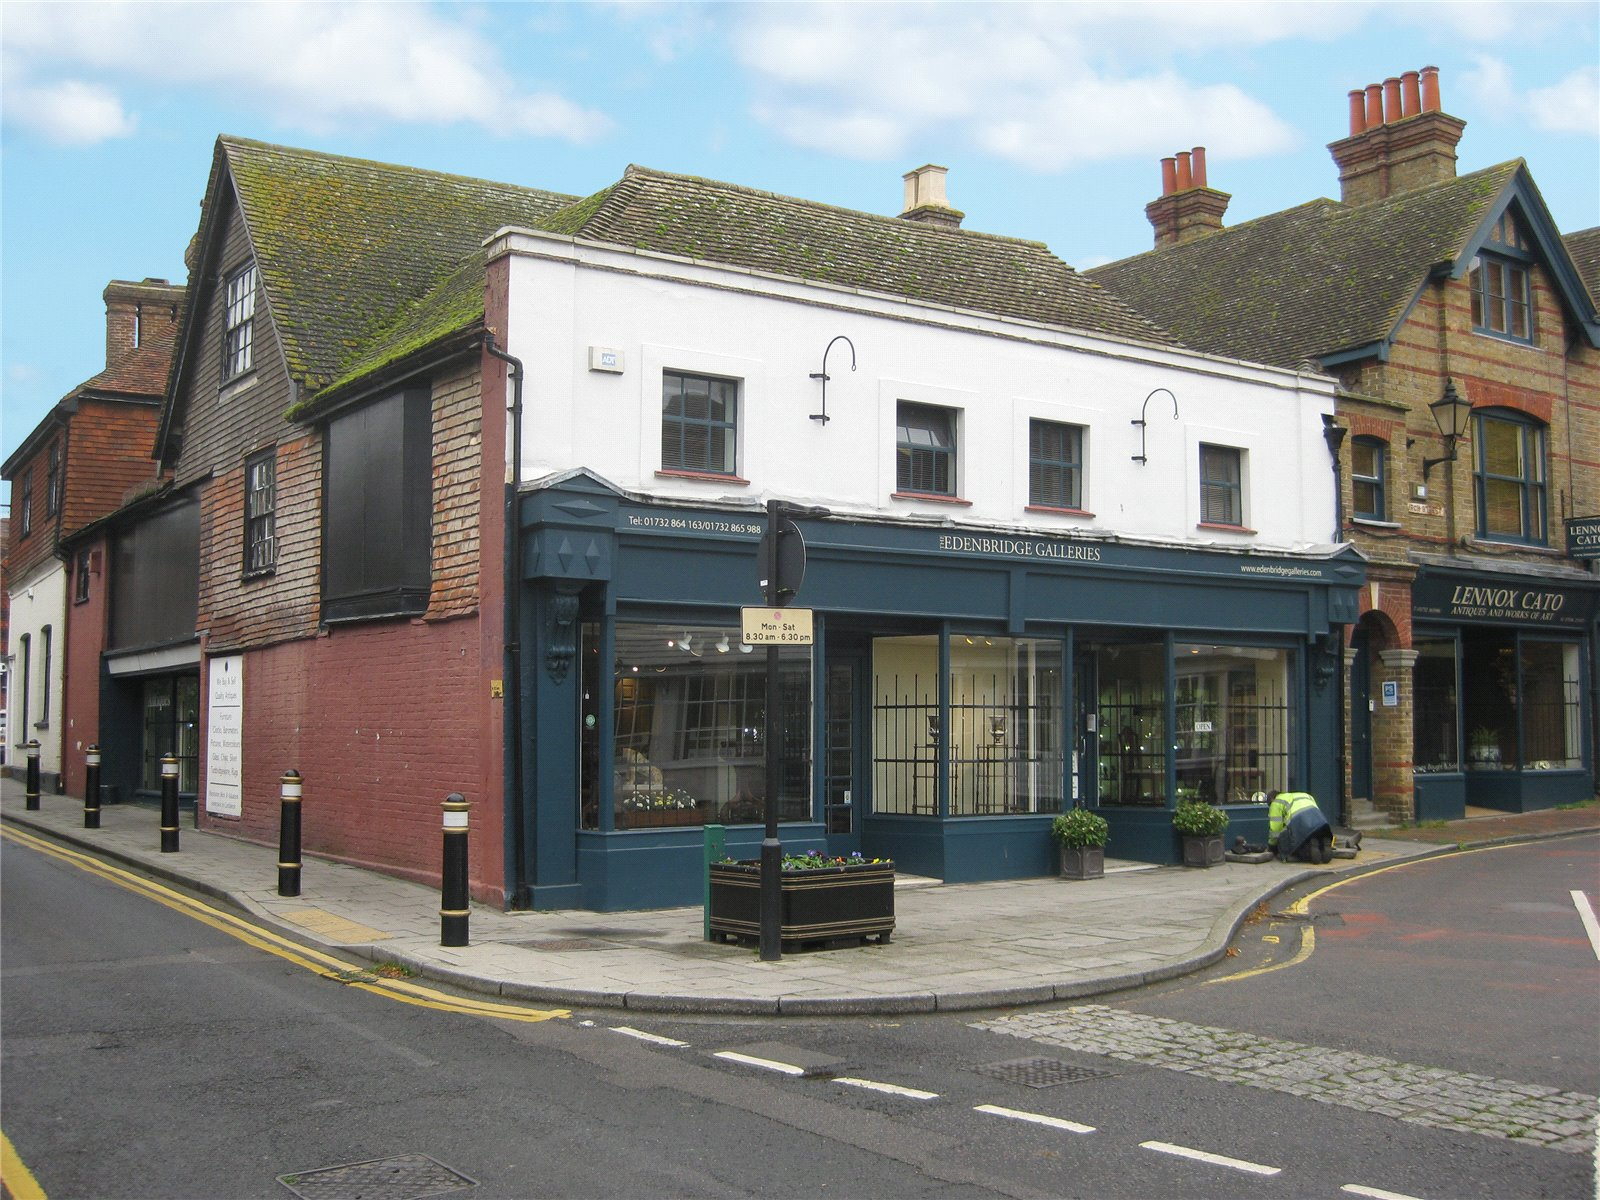 71-73 High Street, Edenbridge - £499,995